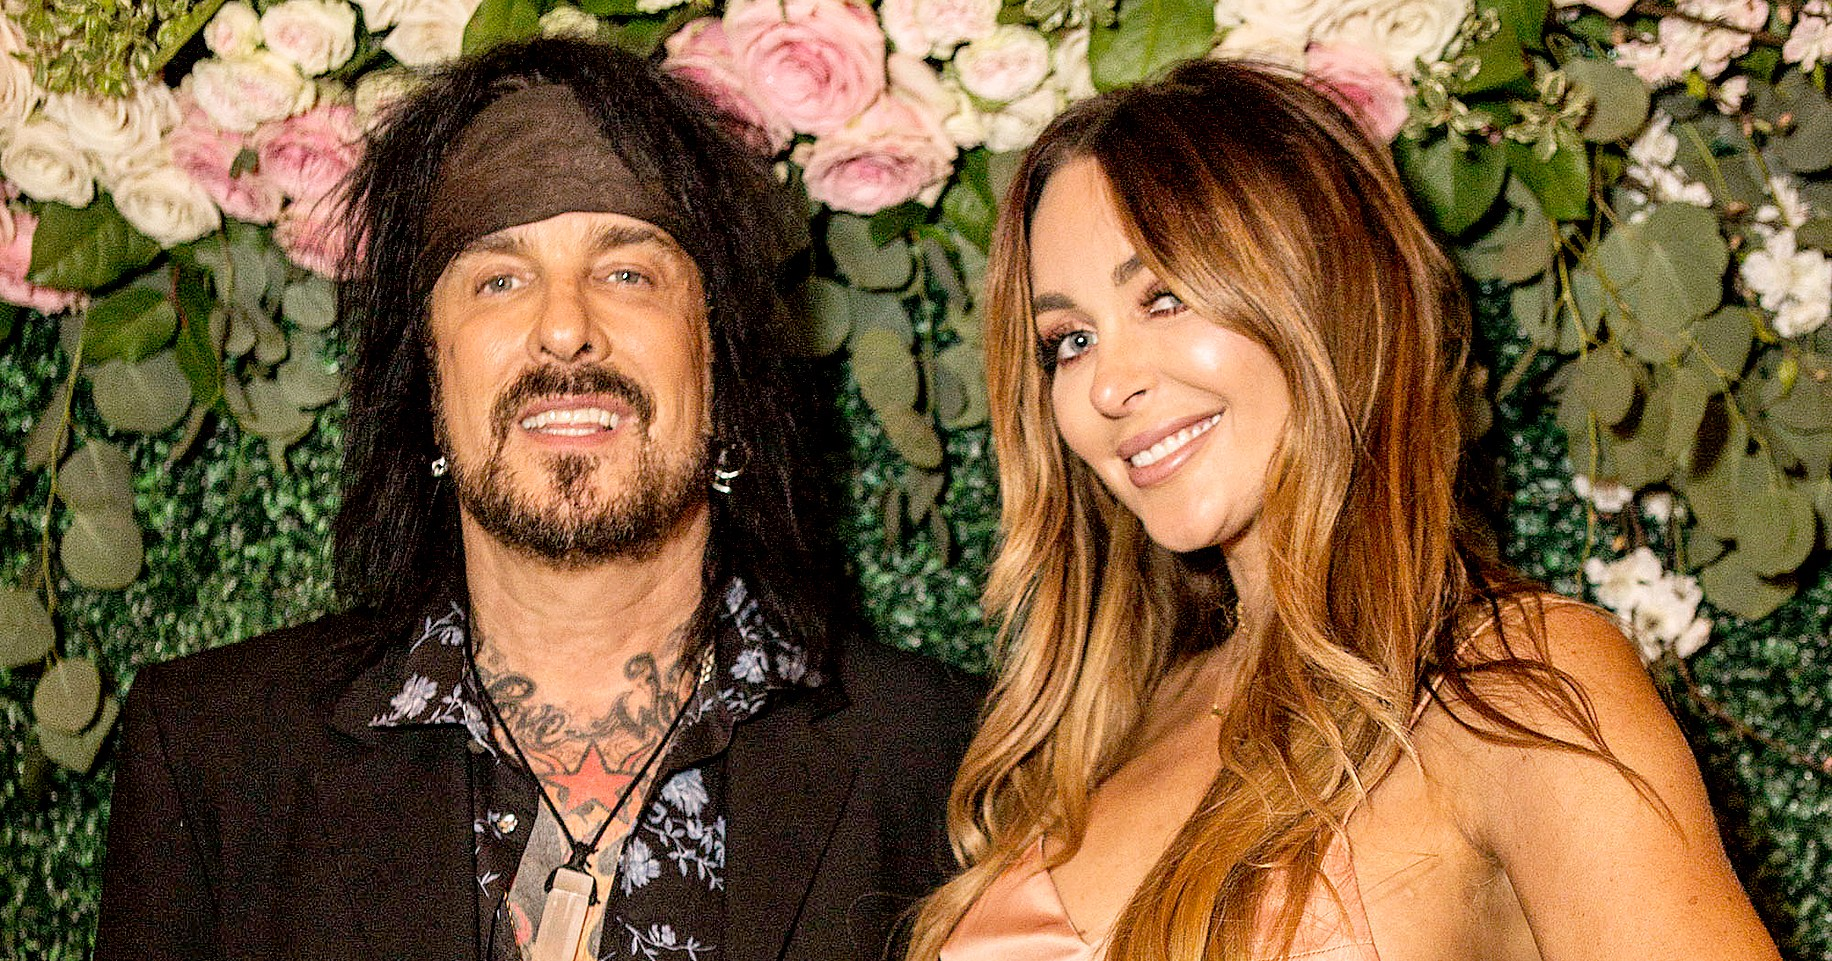 Nikki Sixx, Pregnant Wife Courtney Confirm They're Expecting a Baby Girl